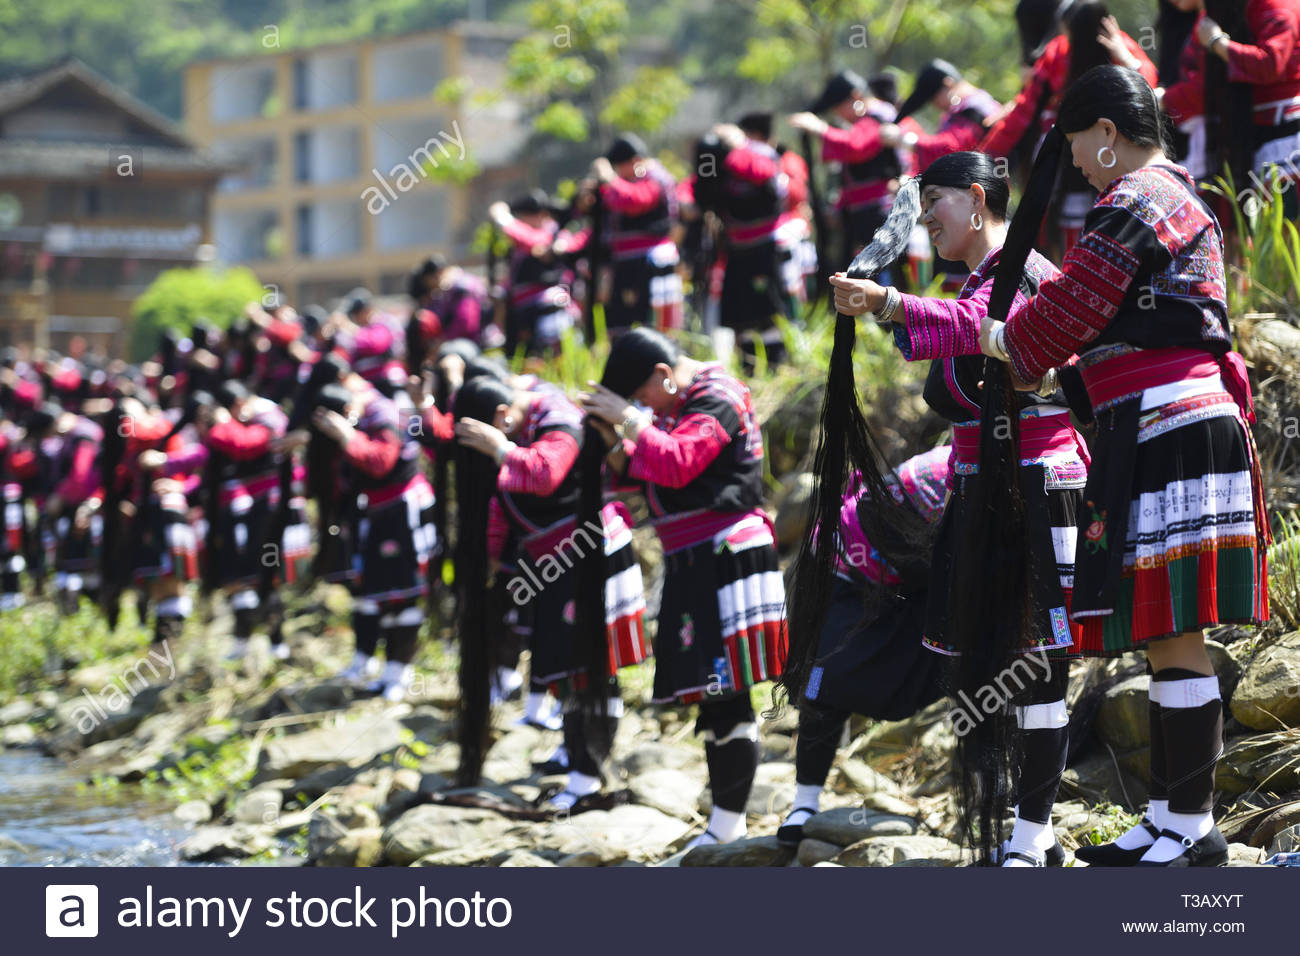 Guilin, China. 07 abr, 2019. Las niñas muestran sus pelos largos en la tradicional ceremonia de adultez 'Pelo Largo Festival' en Guilin, Guangxi, China el 07 de abril, 2019.(Foto por TPG/cnsphotos) Credit: TopPhoto/Alamy Live News Imagen De Stock